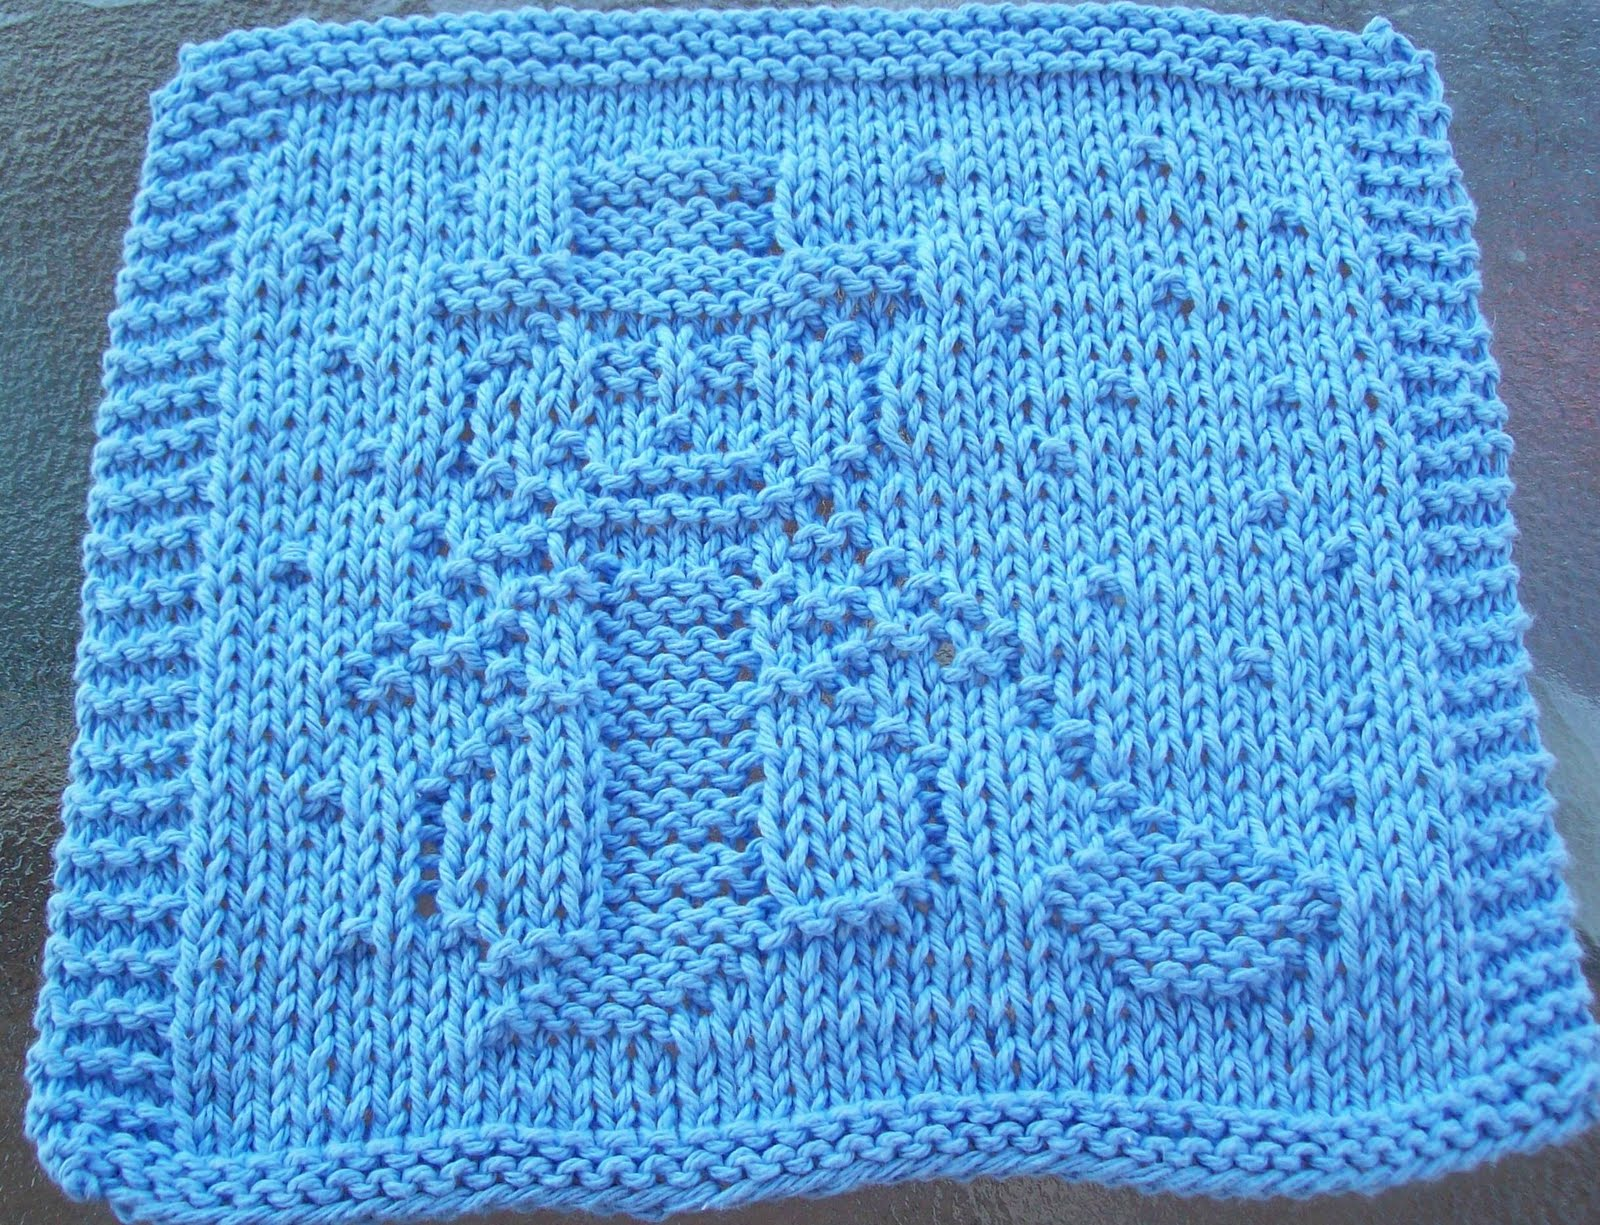 How To Knit Dishcloths Free Patterns : Knitting Dishcloth Patterns Fish